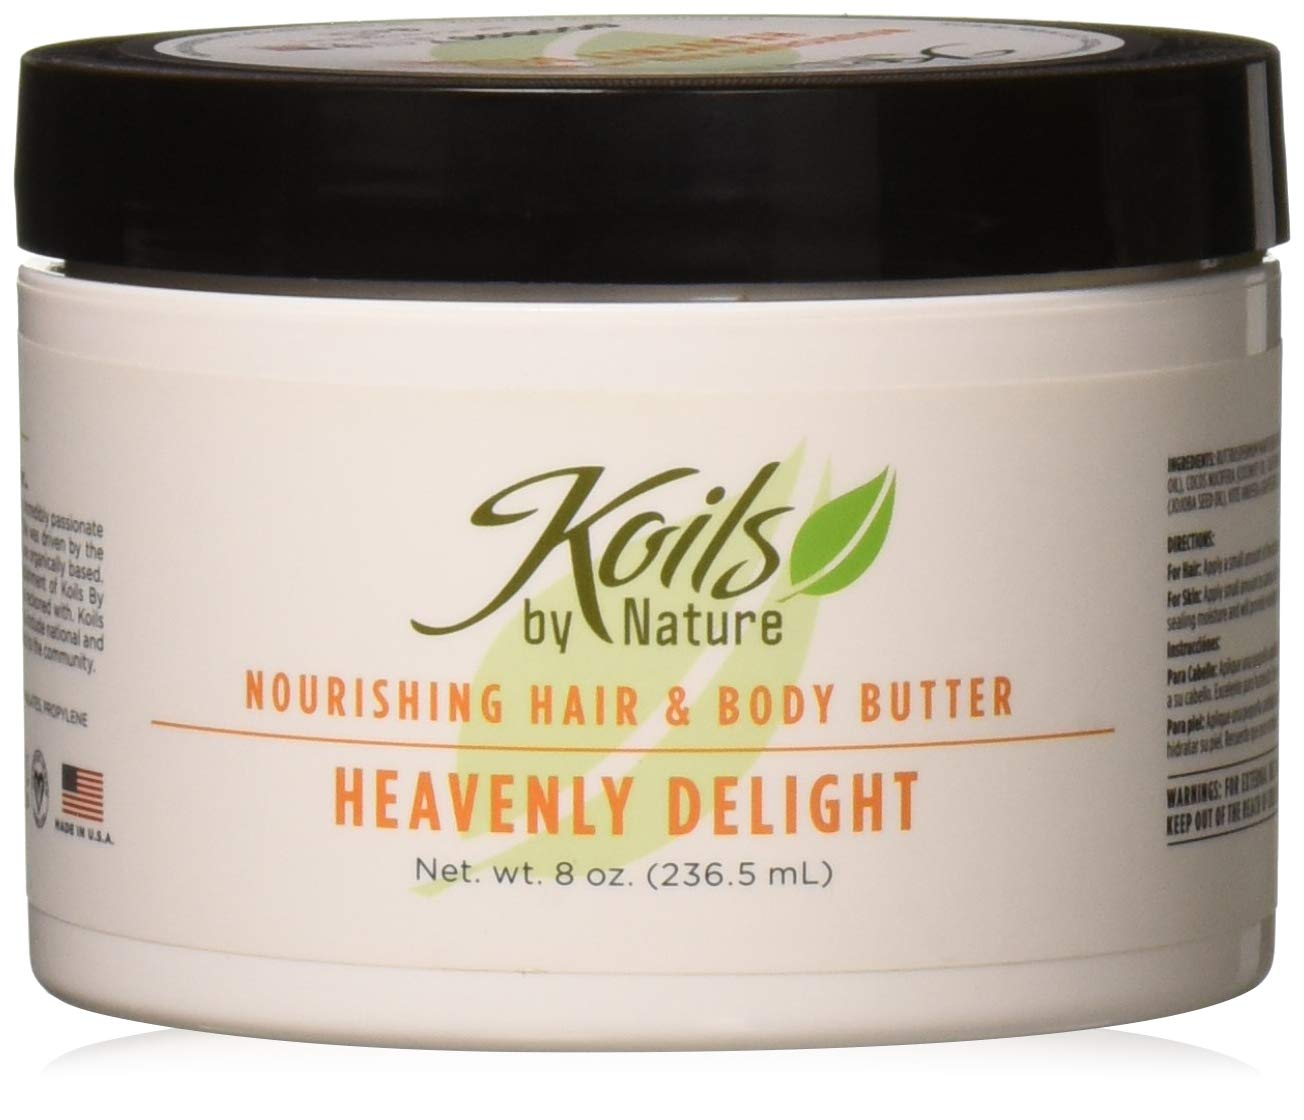 Koils By Nature Nourishing Hair & Body Butter